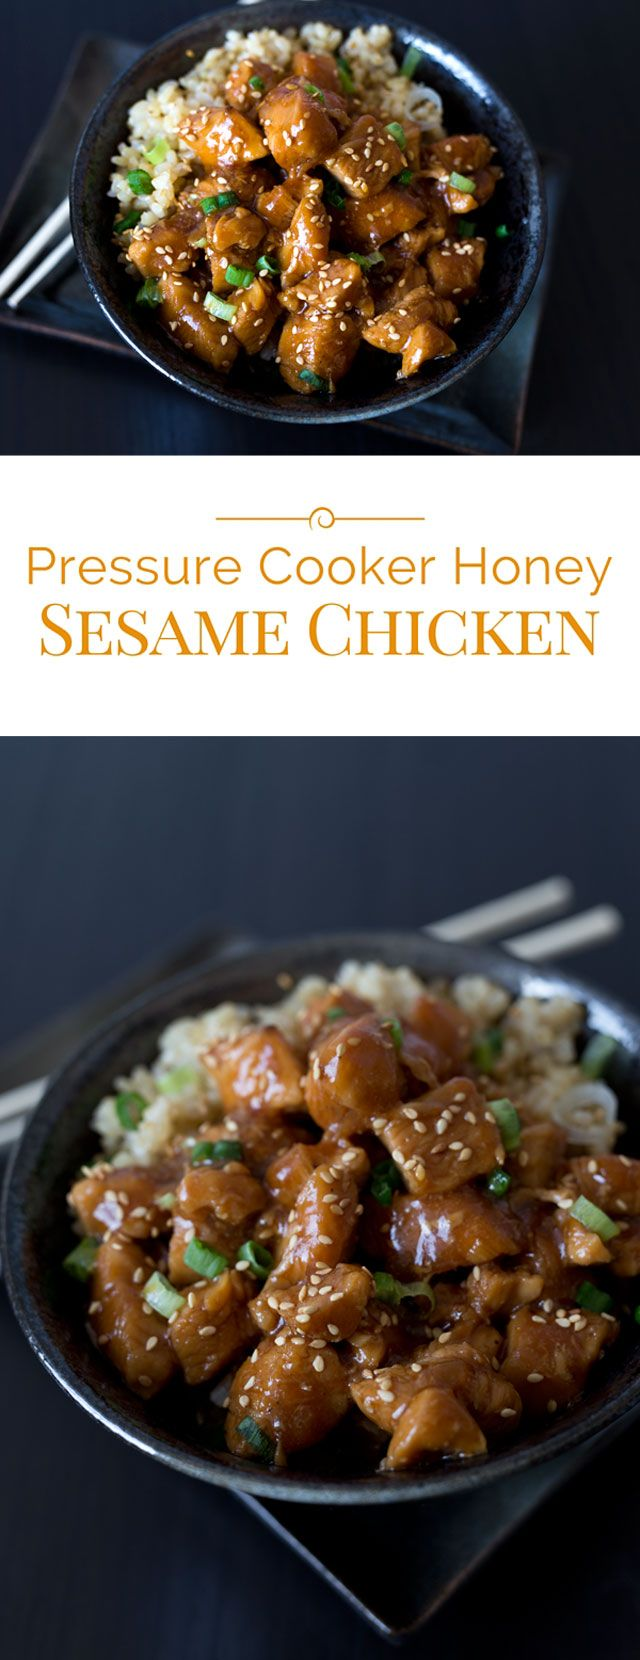 Tender bite size chunks of chicken in a sweet, sticky sauce. A quick, easy to make meal that the whole family will love.